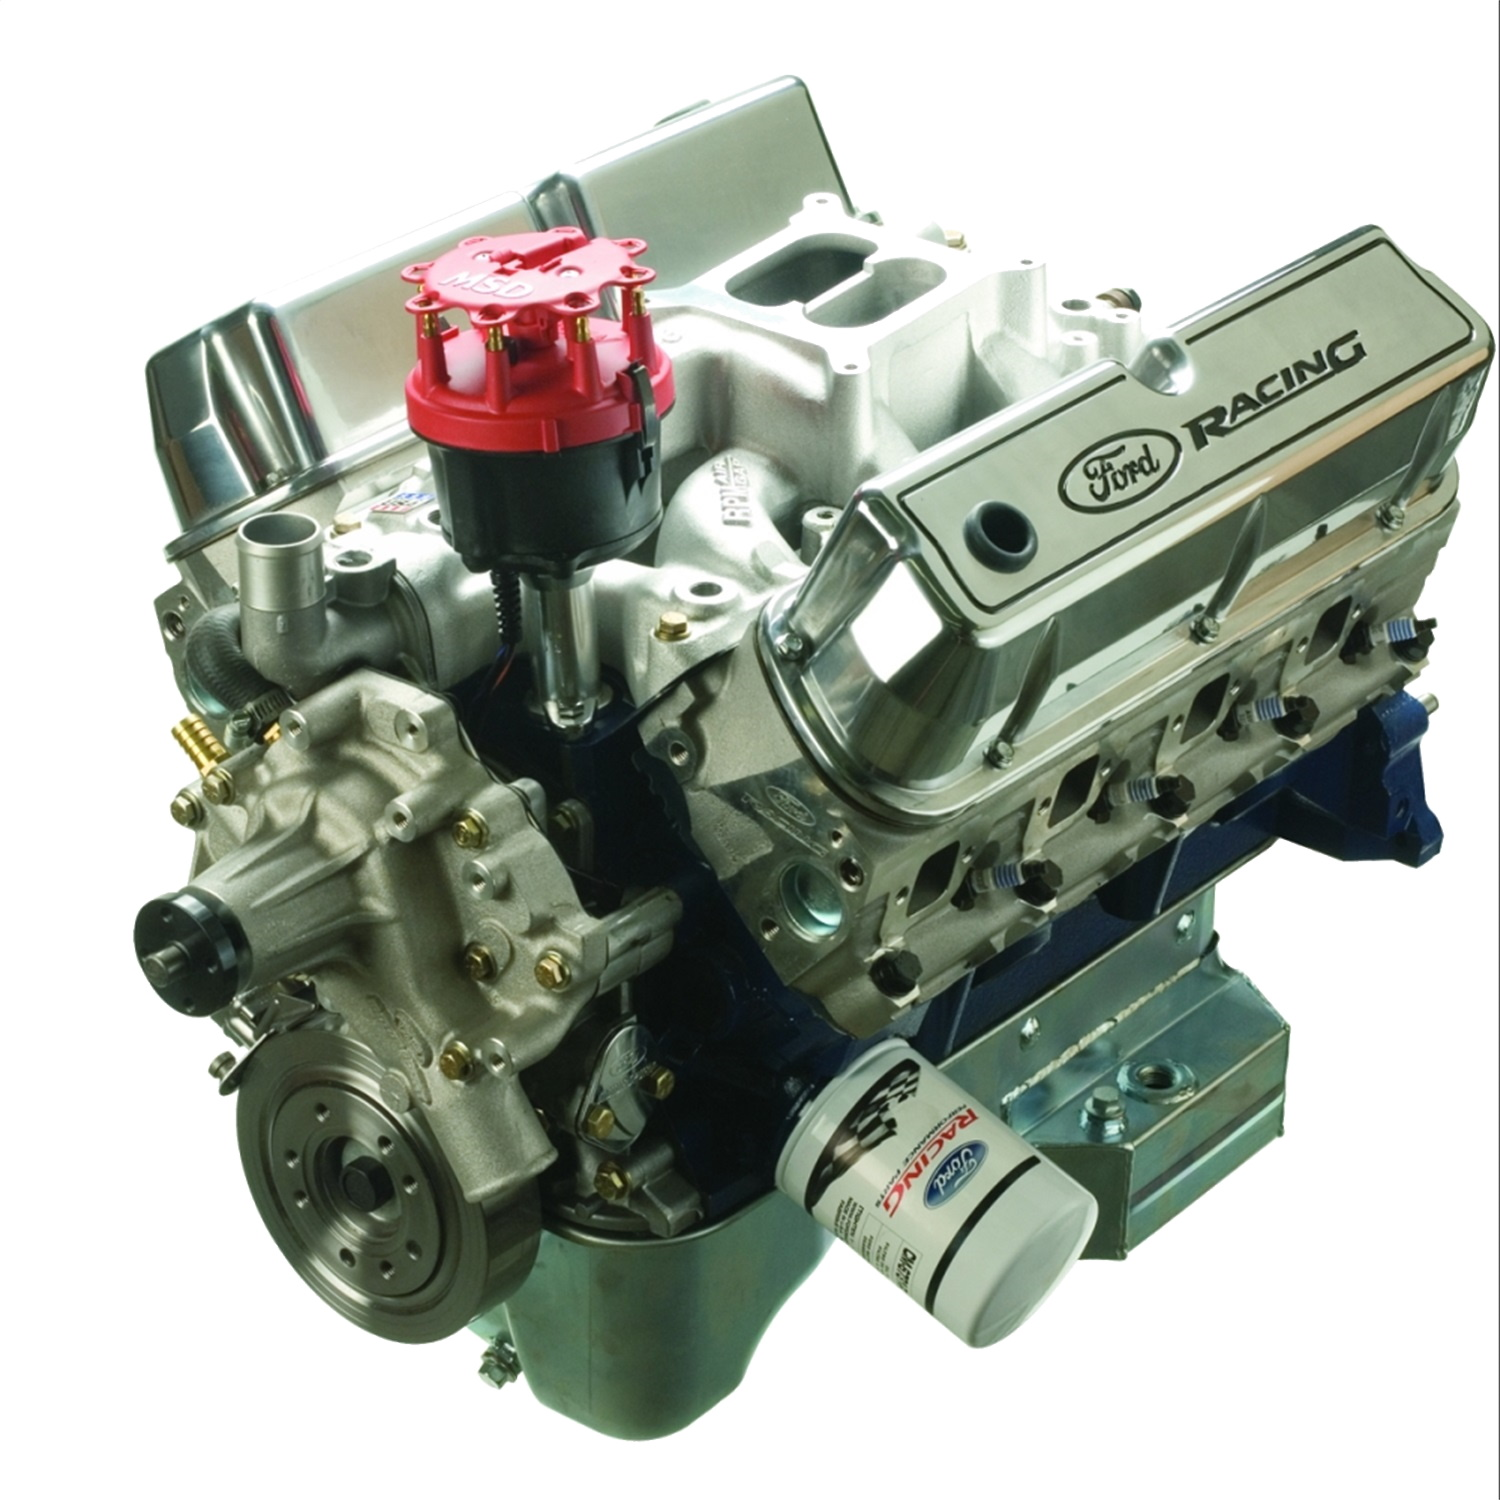 Ford Performance Parts M-6007-S347JR2 Sealed Racing Engine